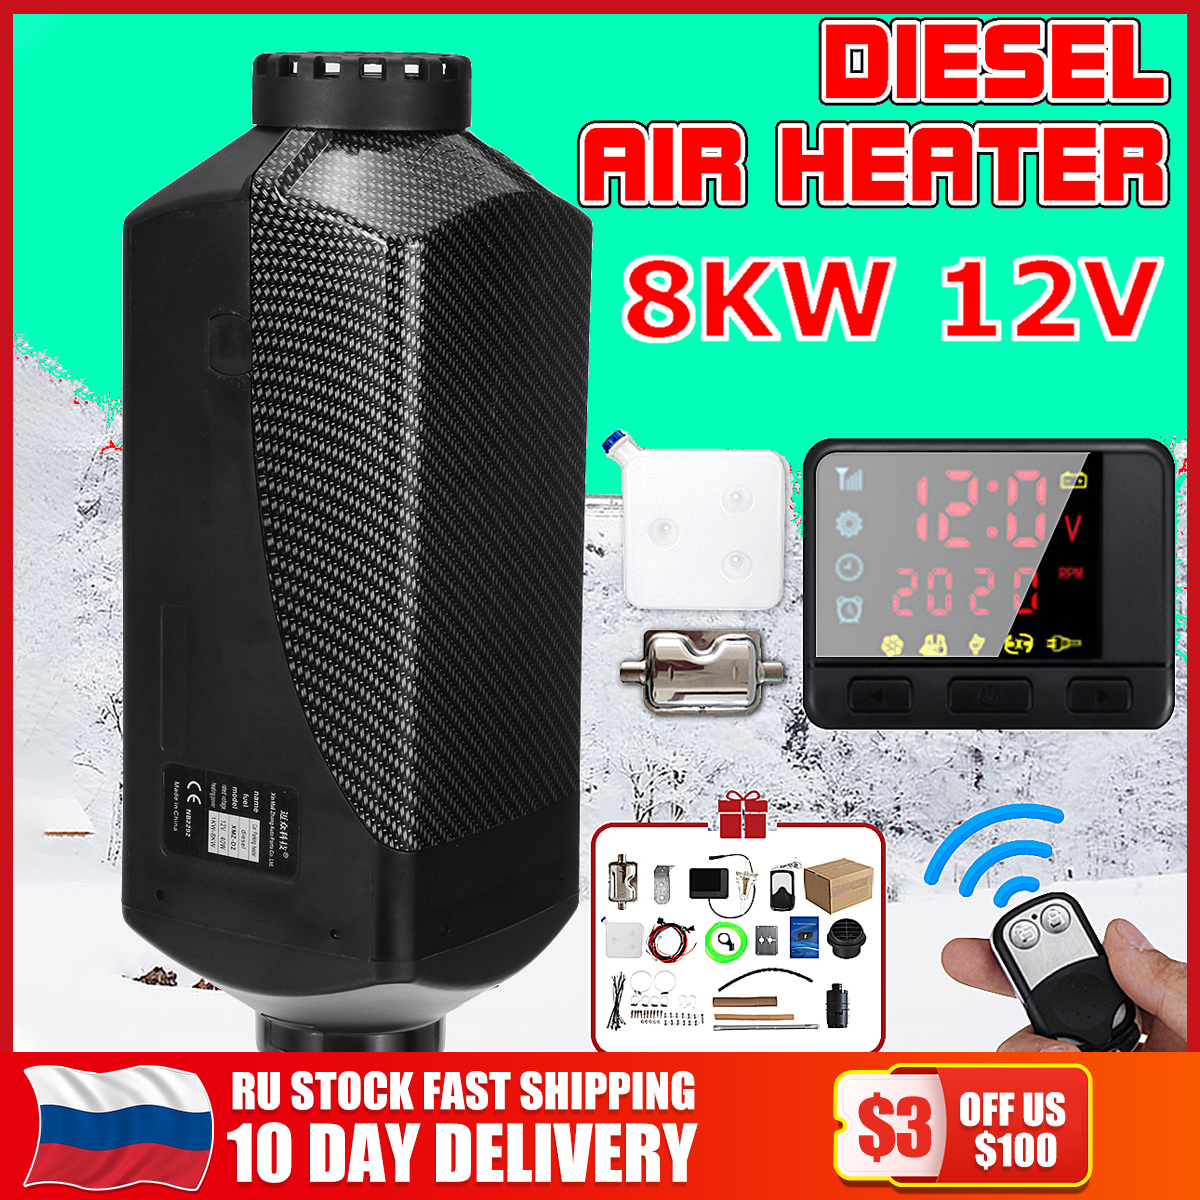 Car Heater 12V /24V 8kW for Webasto Air diesels Heater 8KW For Trucks Motor Homes Boats Bus LCD Monitor Switch +Remote Control|Heating & Fans| |  - title=